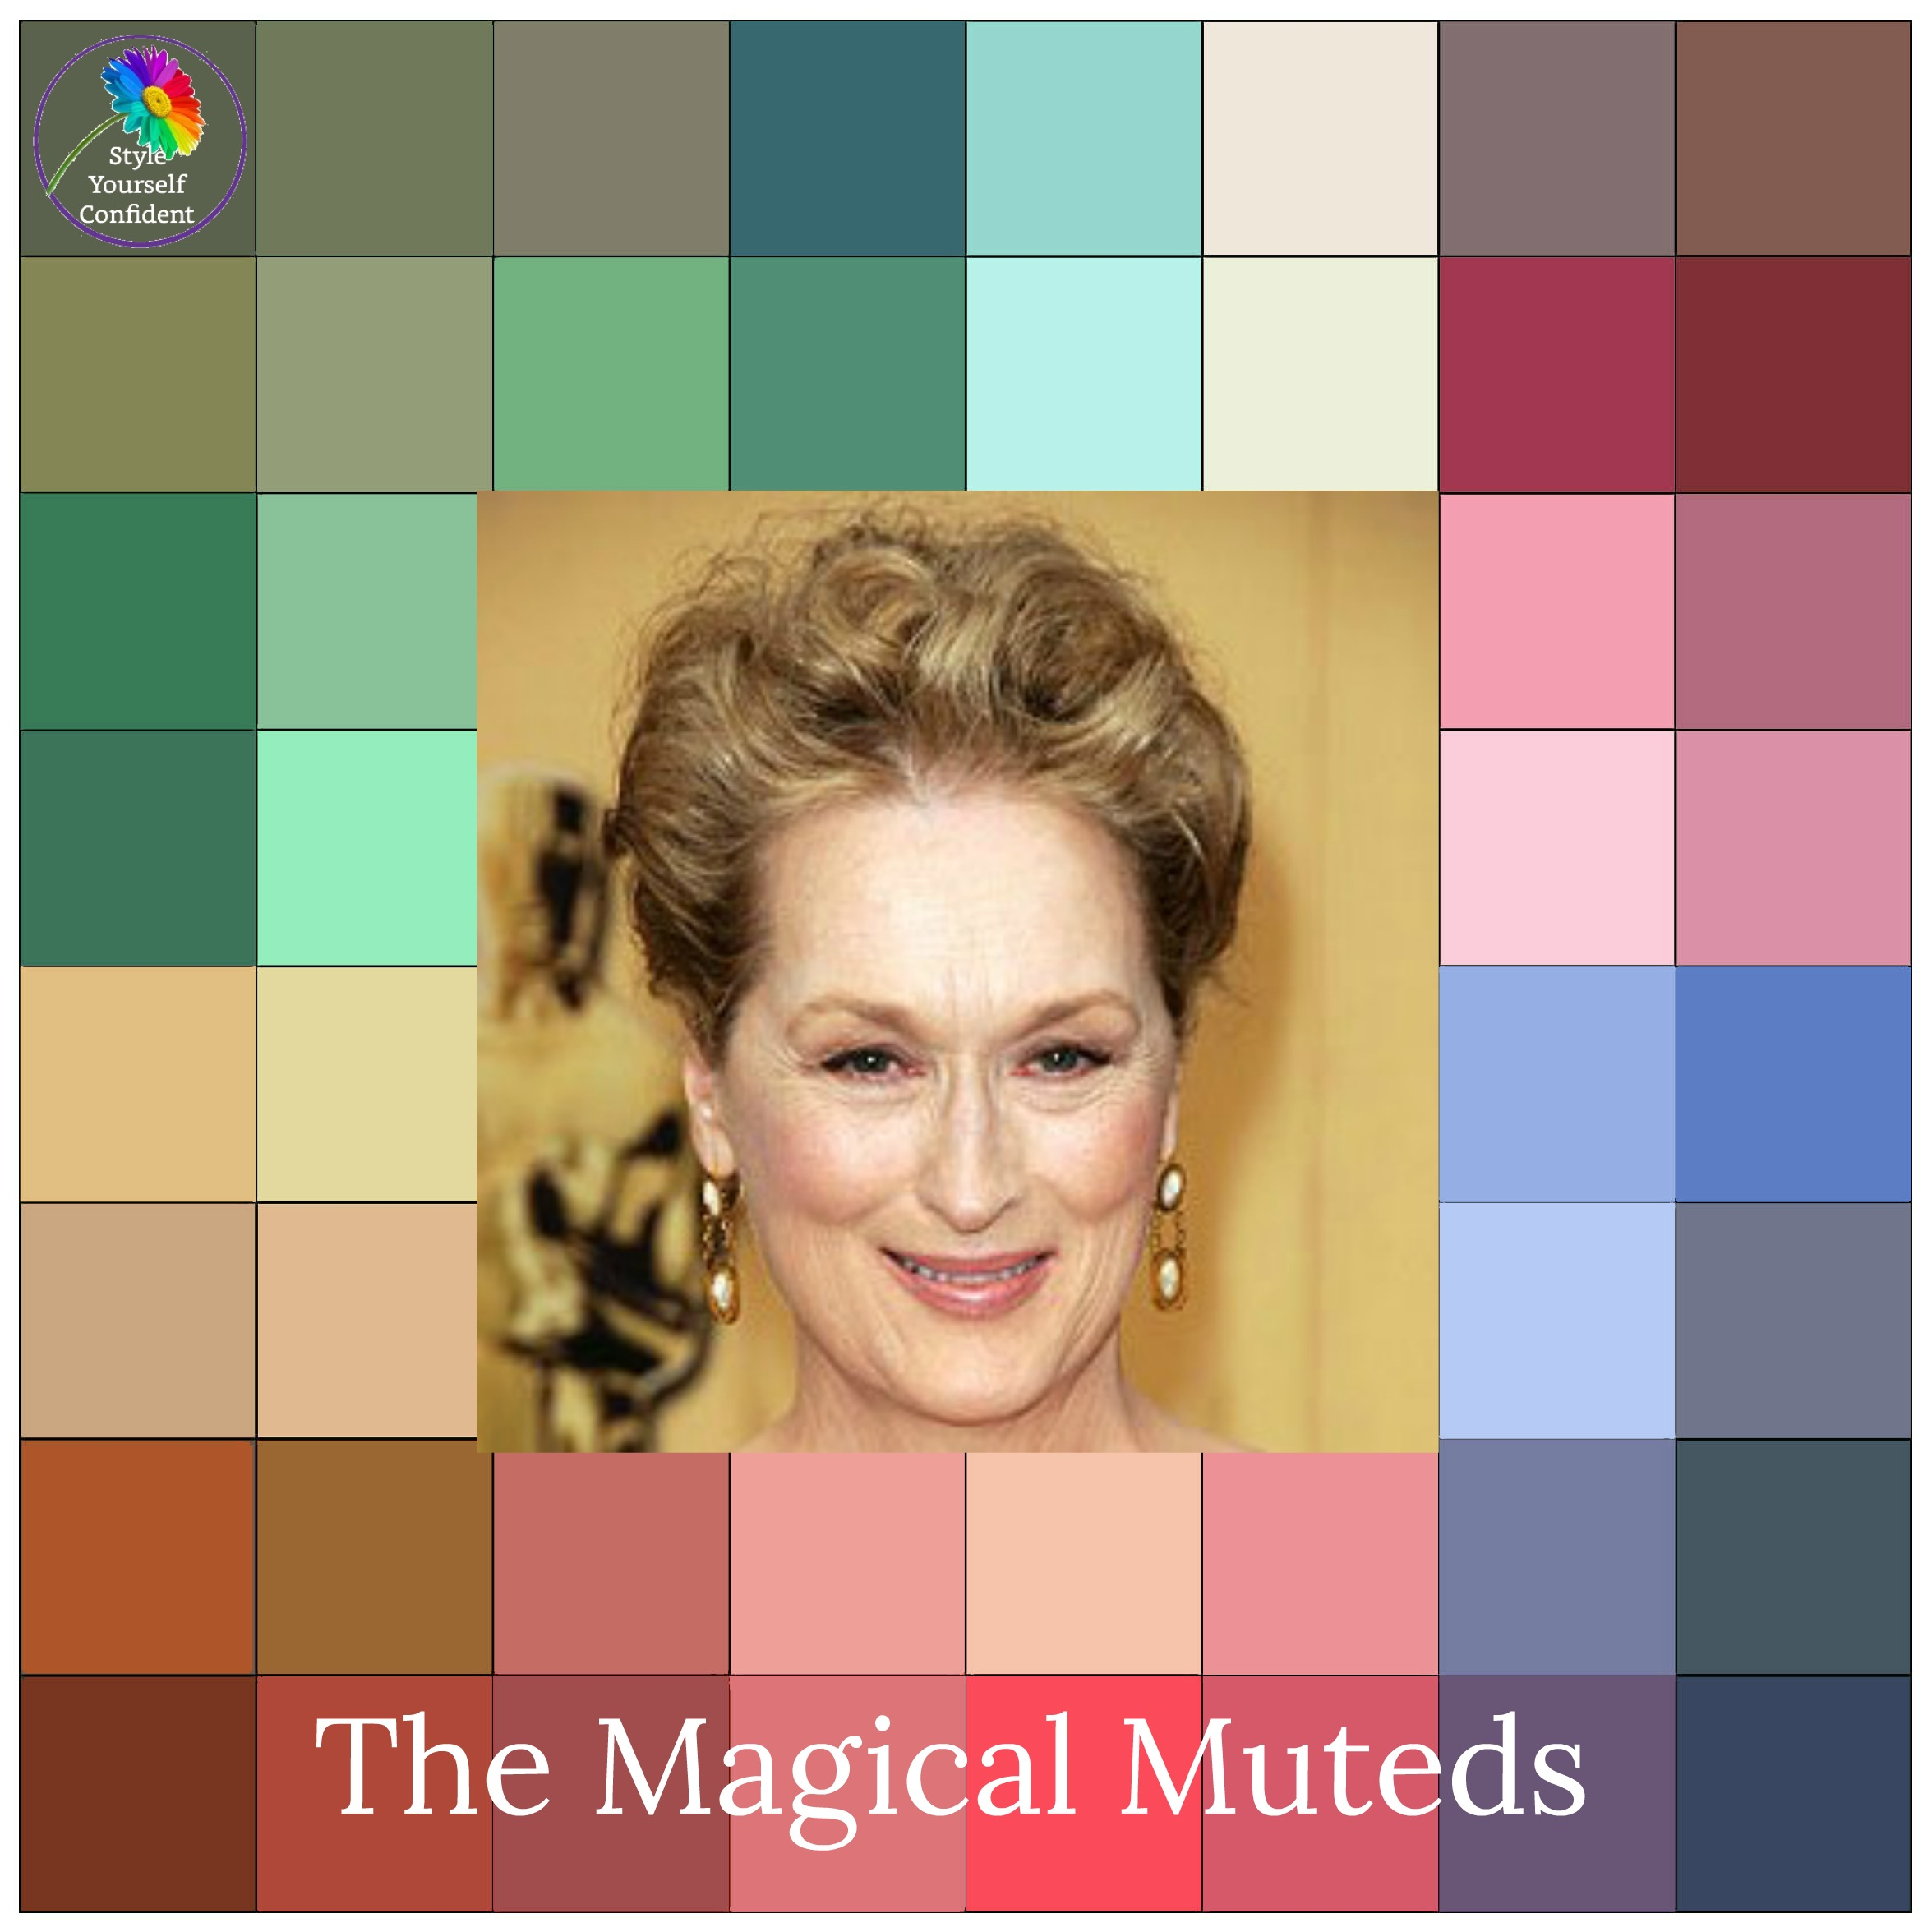 Muted tonal coloring #mutedcolors #mutedcoloring https://www.style-yourself-confident.com/muted-tonal-coloring.html